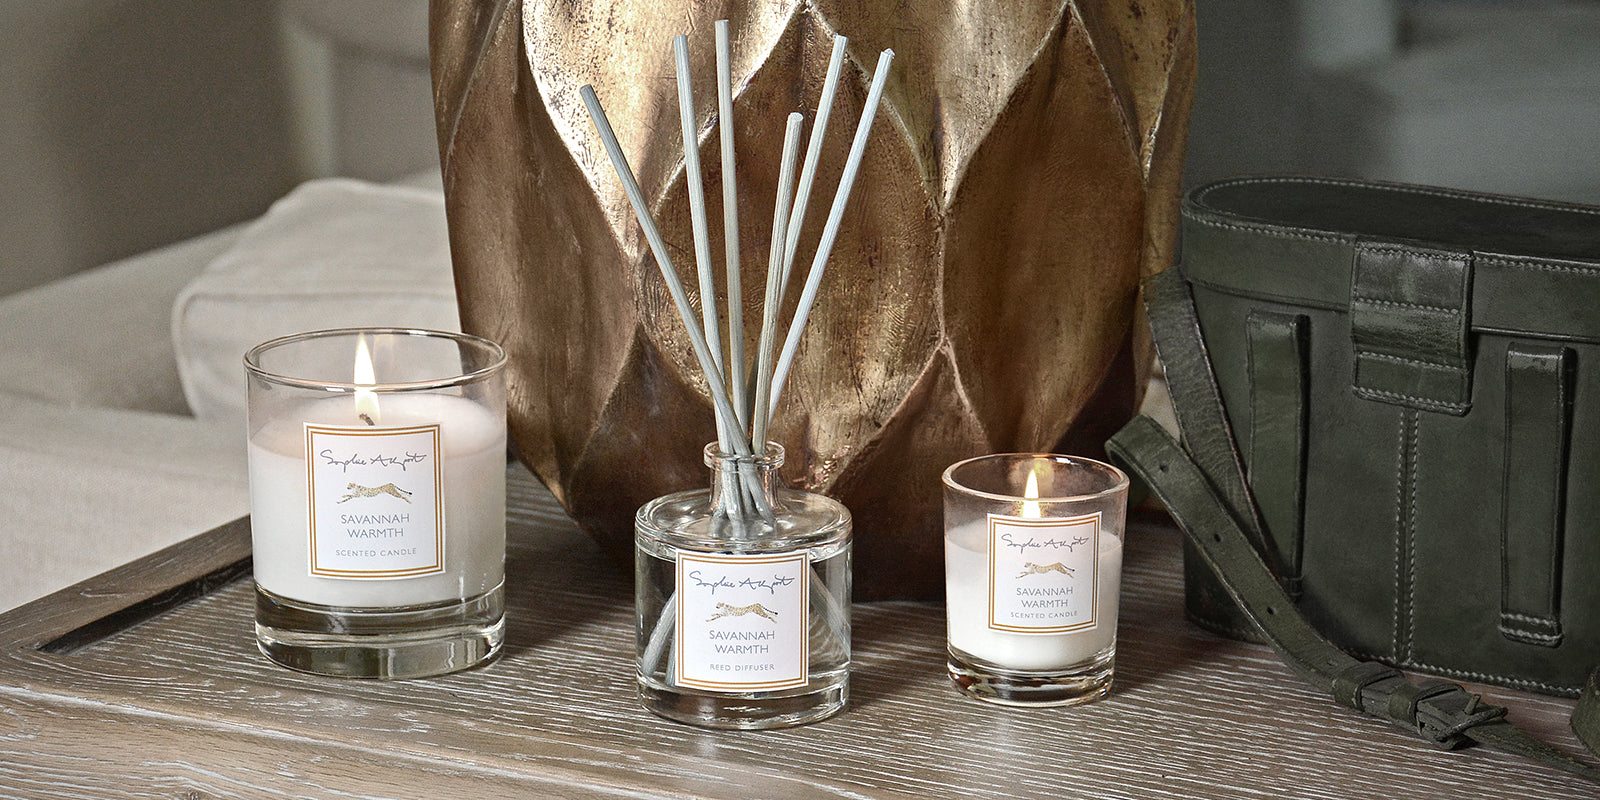 Savannah Warmth Home Scent by Sophie Allport